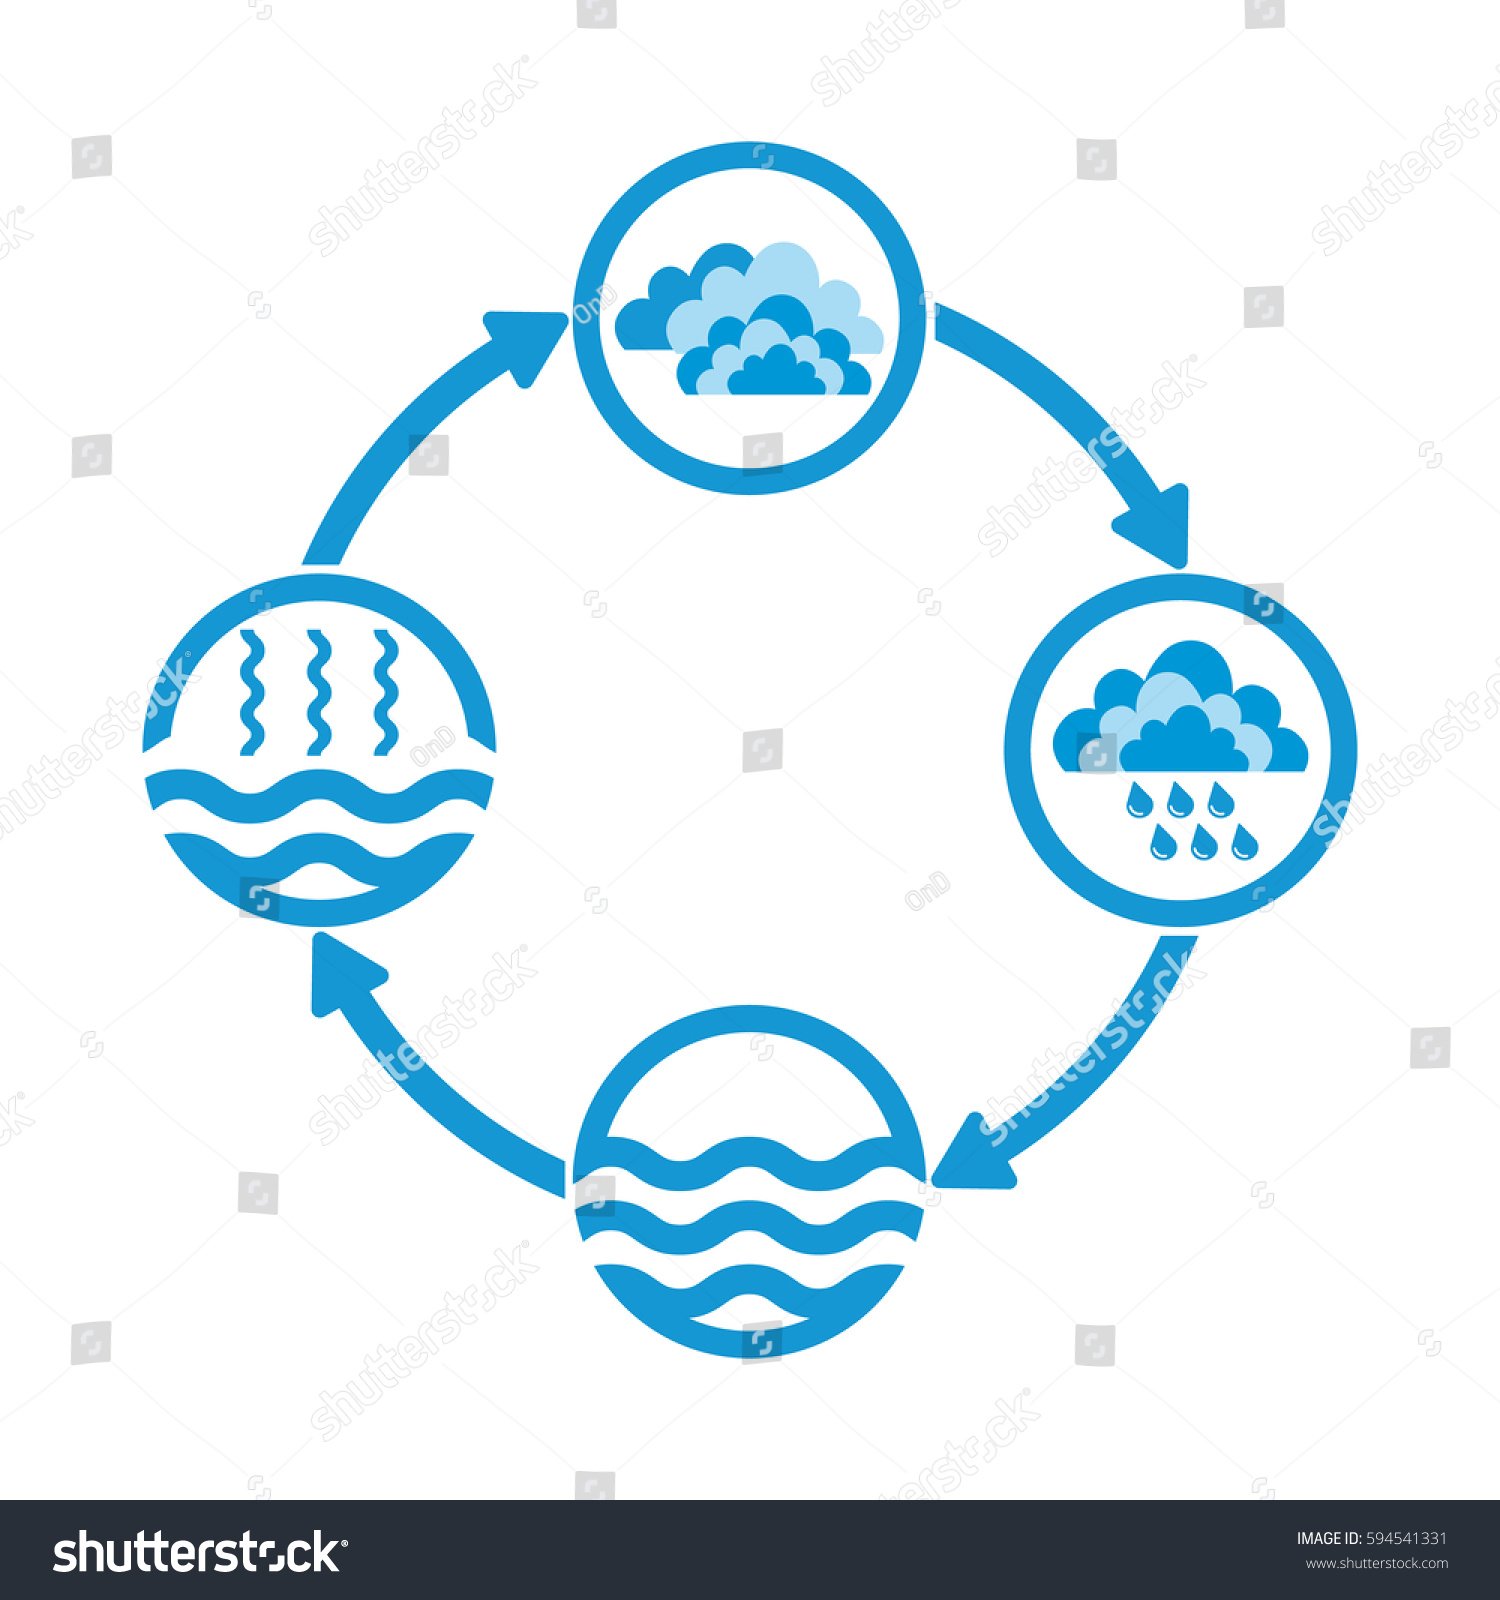 hight resolution of water cycle infographics the water cycle vector diagram of precipitation collection evaporation and condensation icons set vector illustration